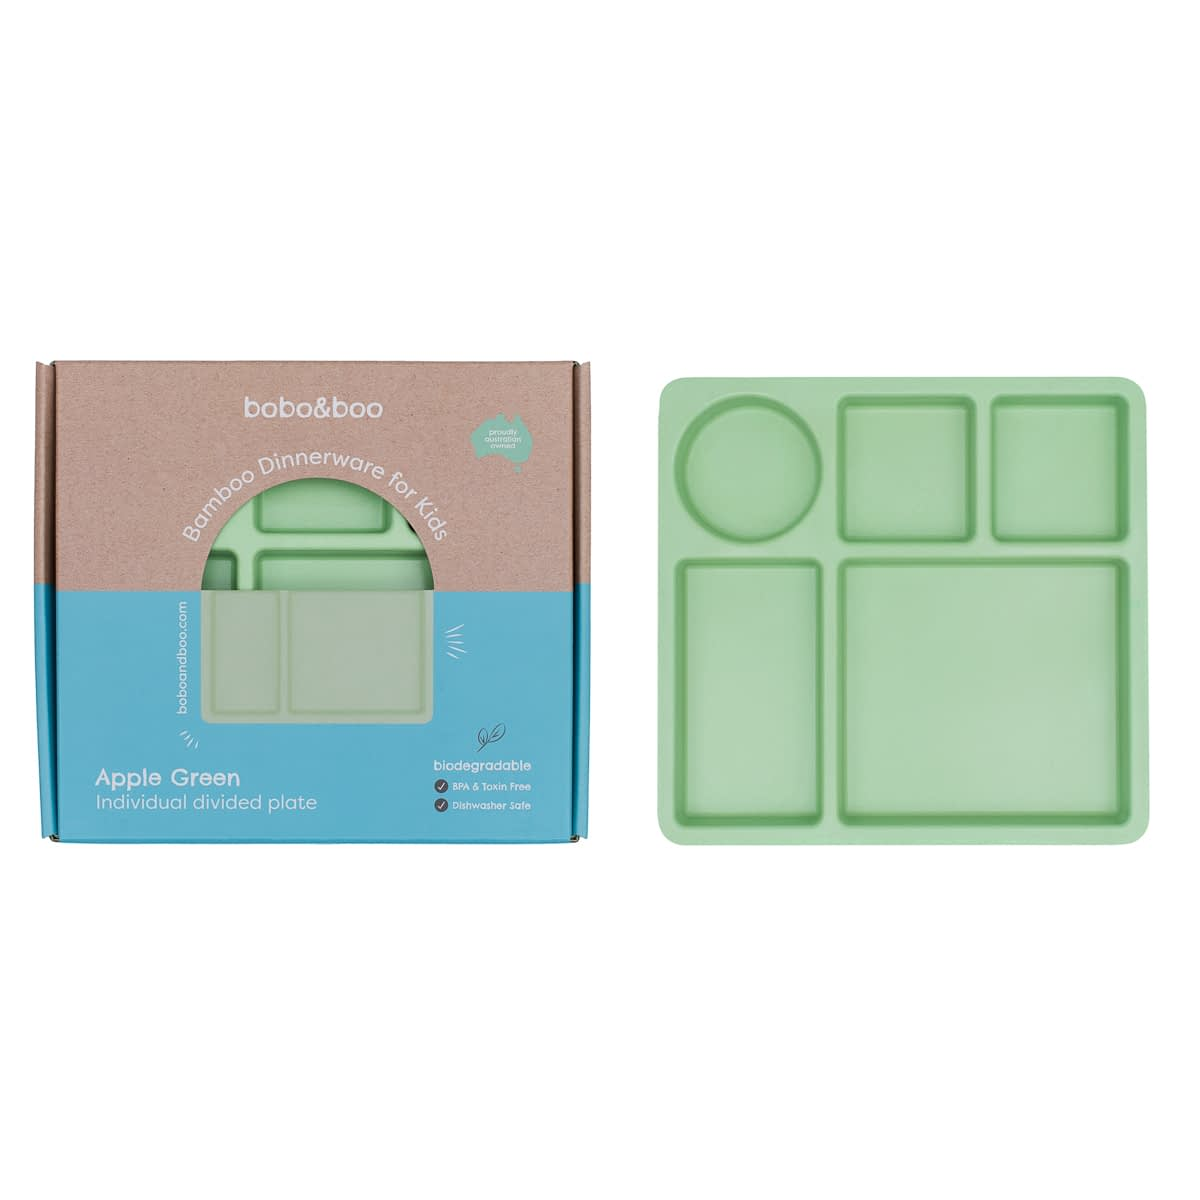 Bobo&boo Divided Plate in Apple Green